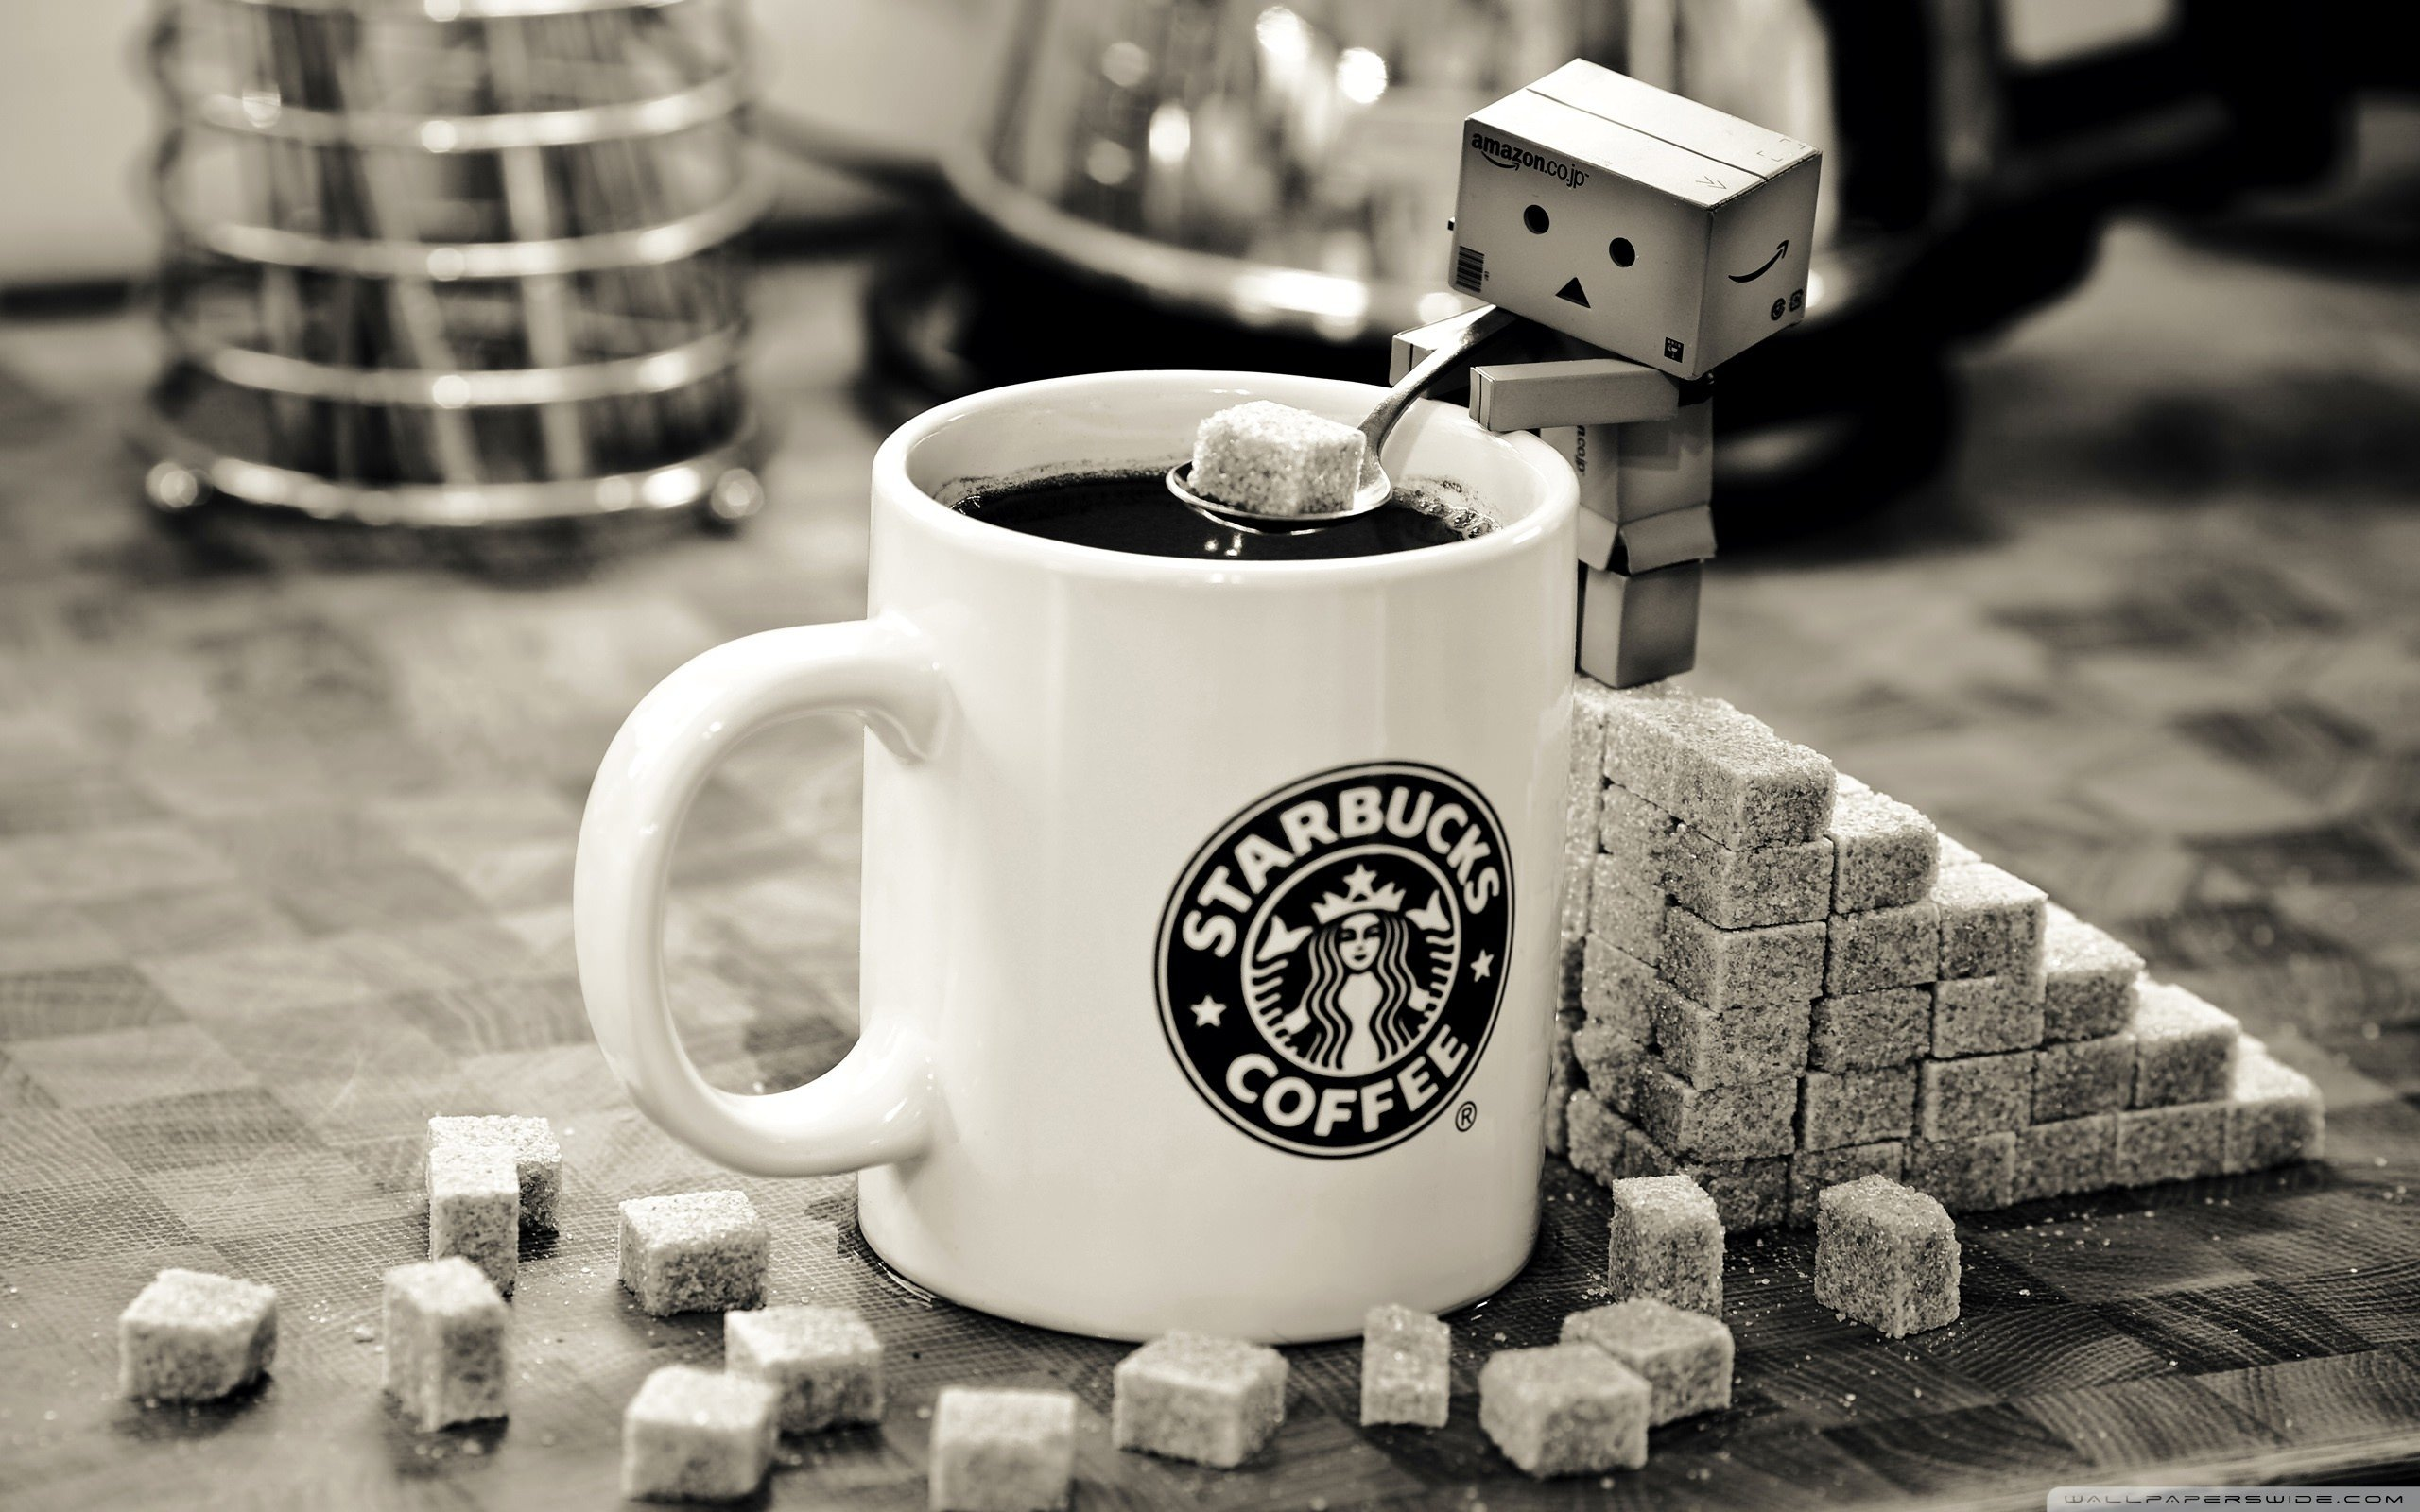 http://7-themes.com/data_images/out/49/6938302-starbucks-coffee-wallpaper.jpg